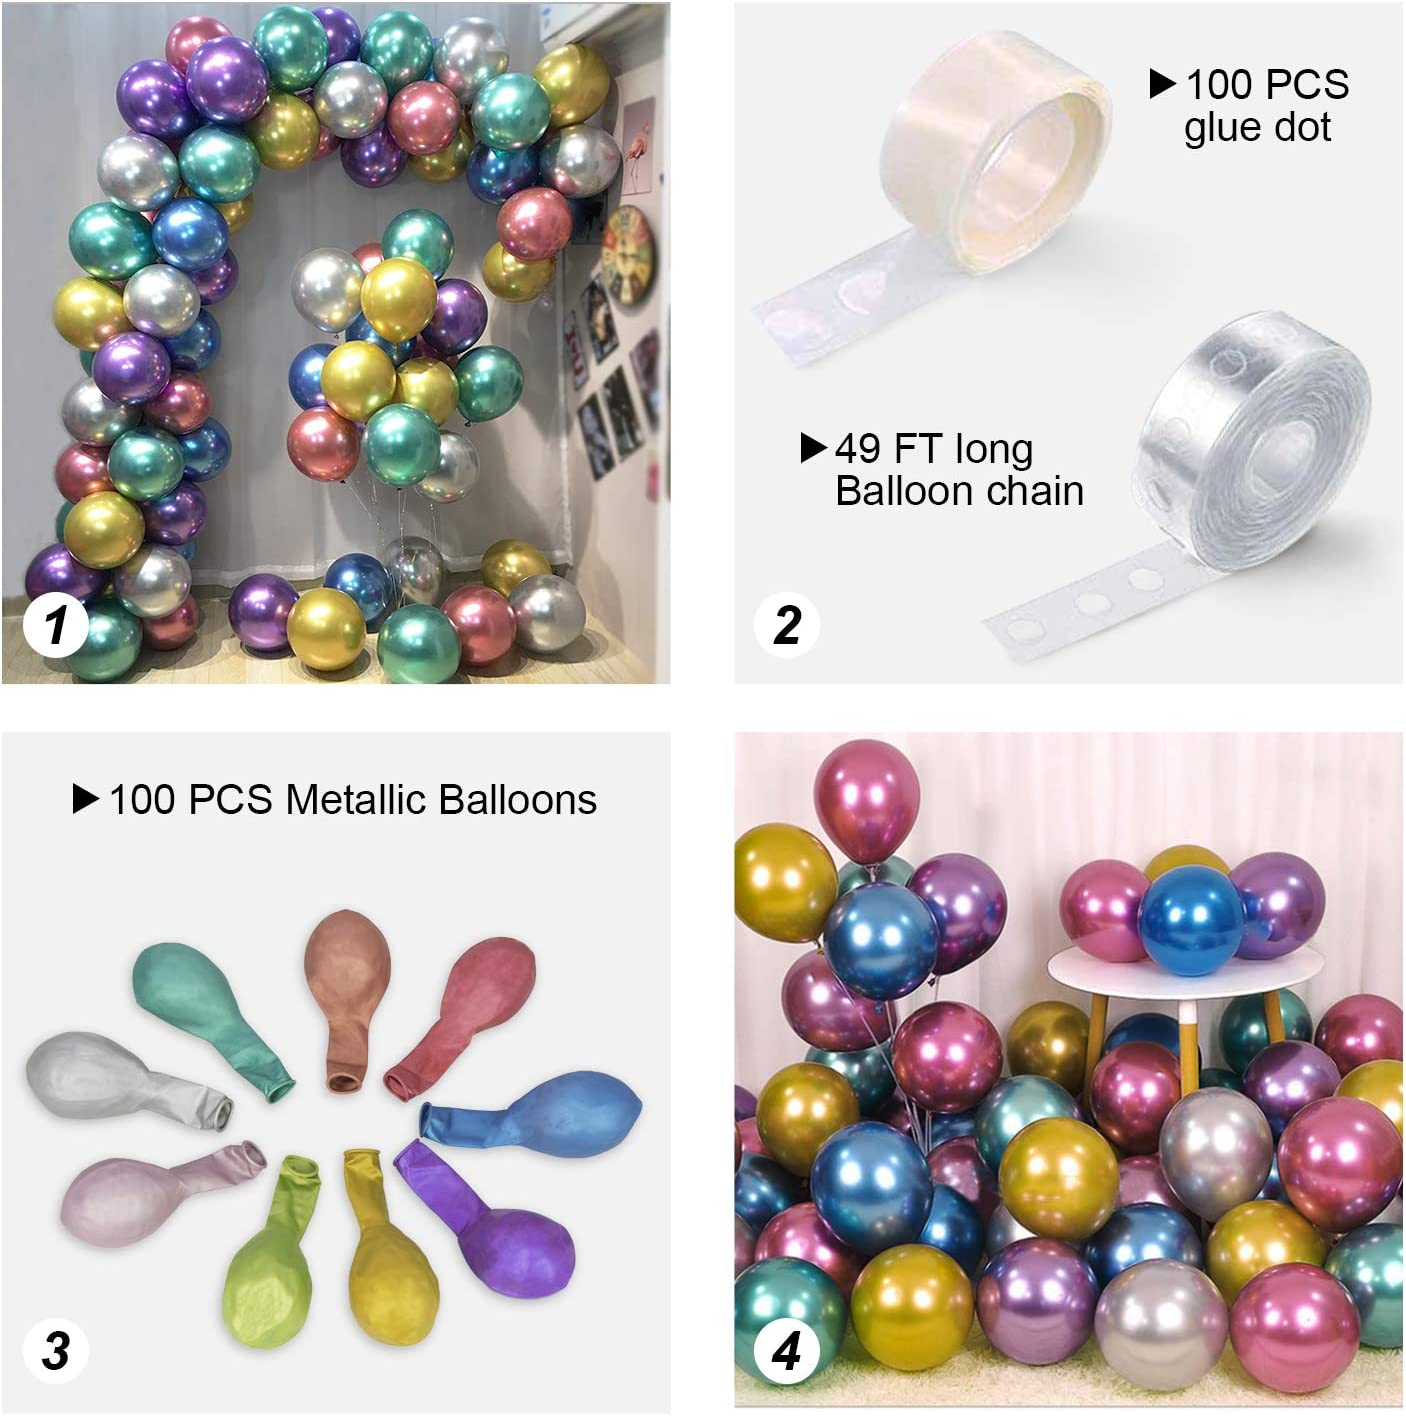 9 Colors 100pcs Metallic Balloons Arch KIT for Party,12inch Premium Thick Chrome Latex Metal Multicolor Balloon with Arch Accessories,for almost Party Decorations Birthday Wedding Carnival